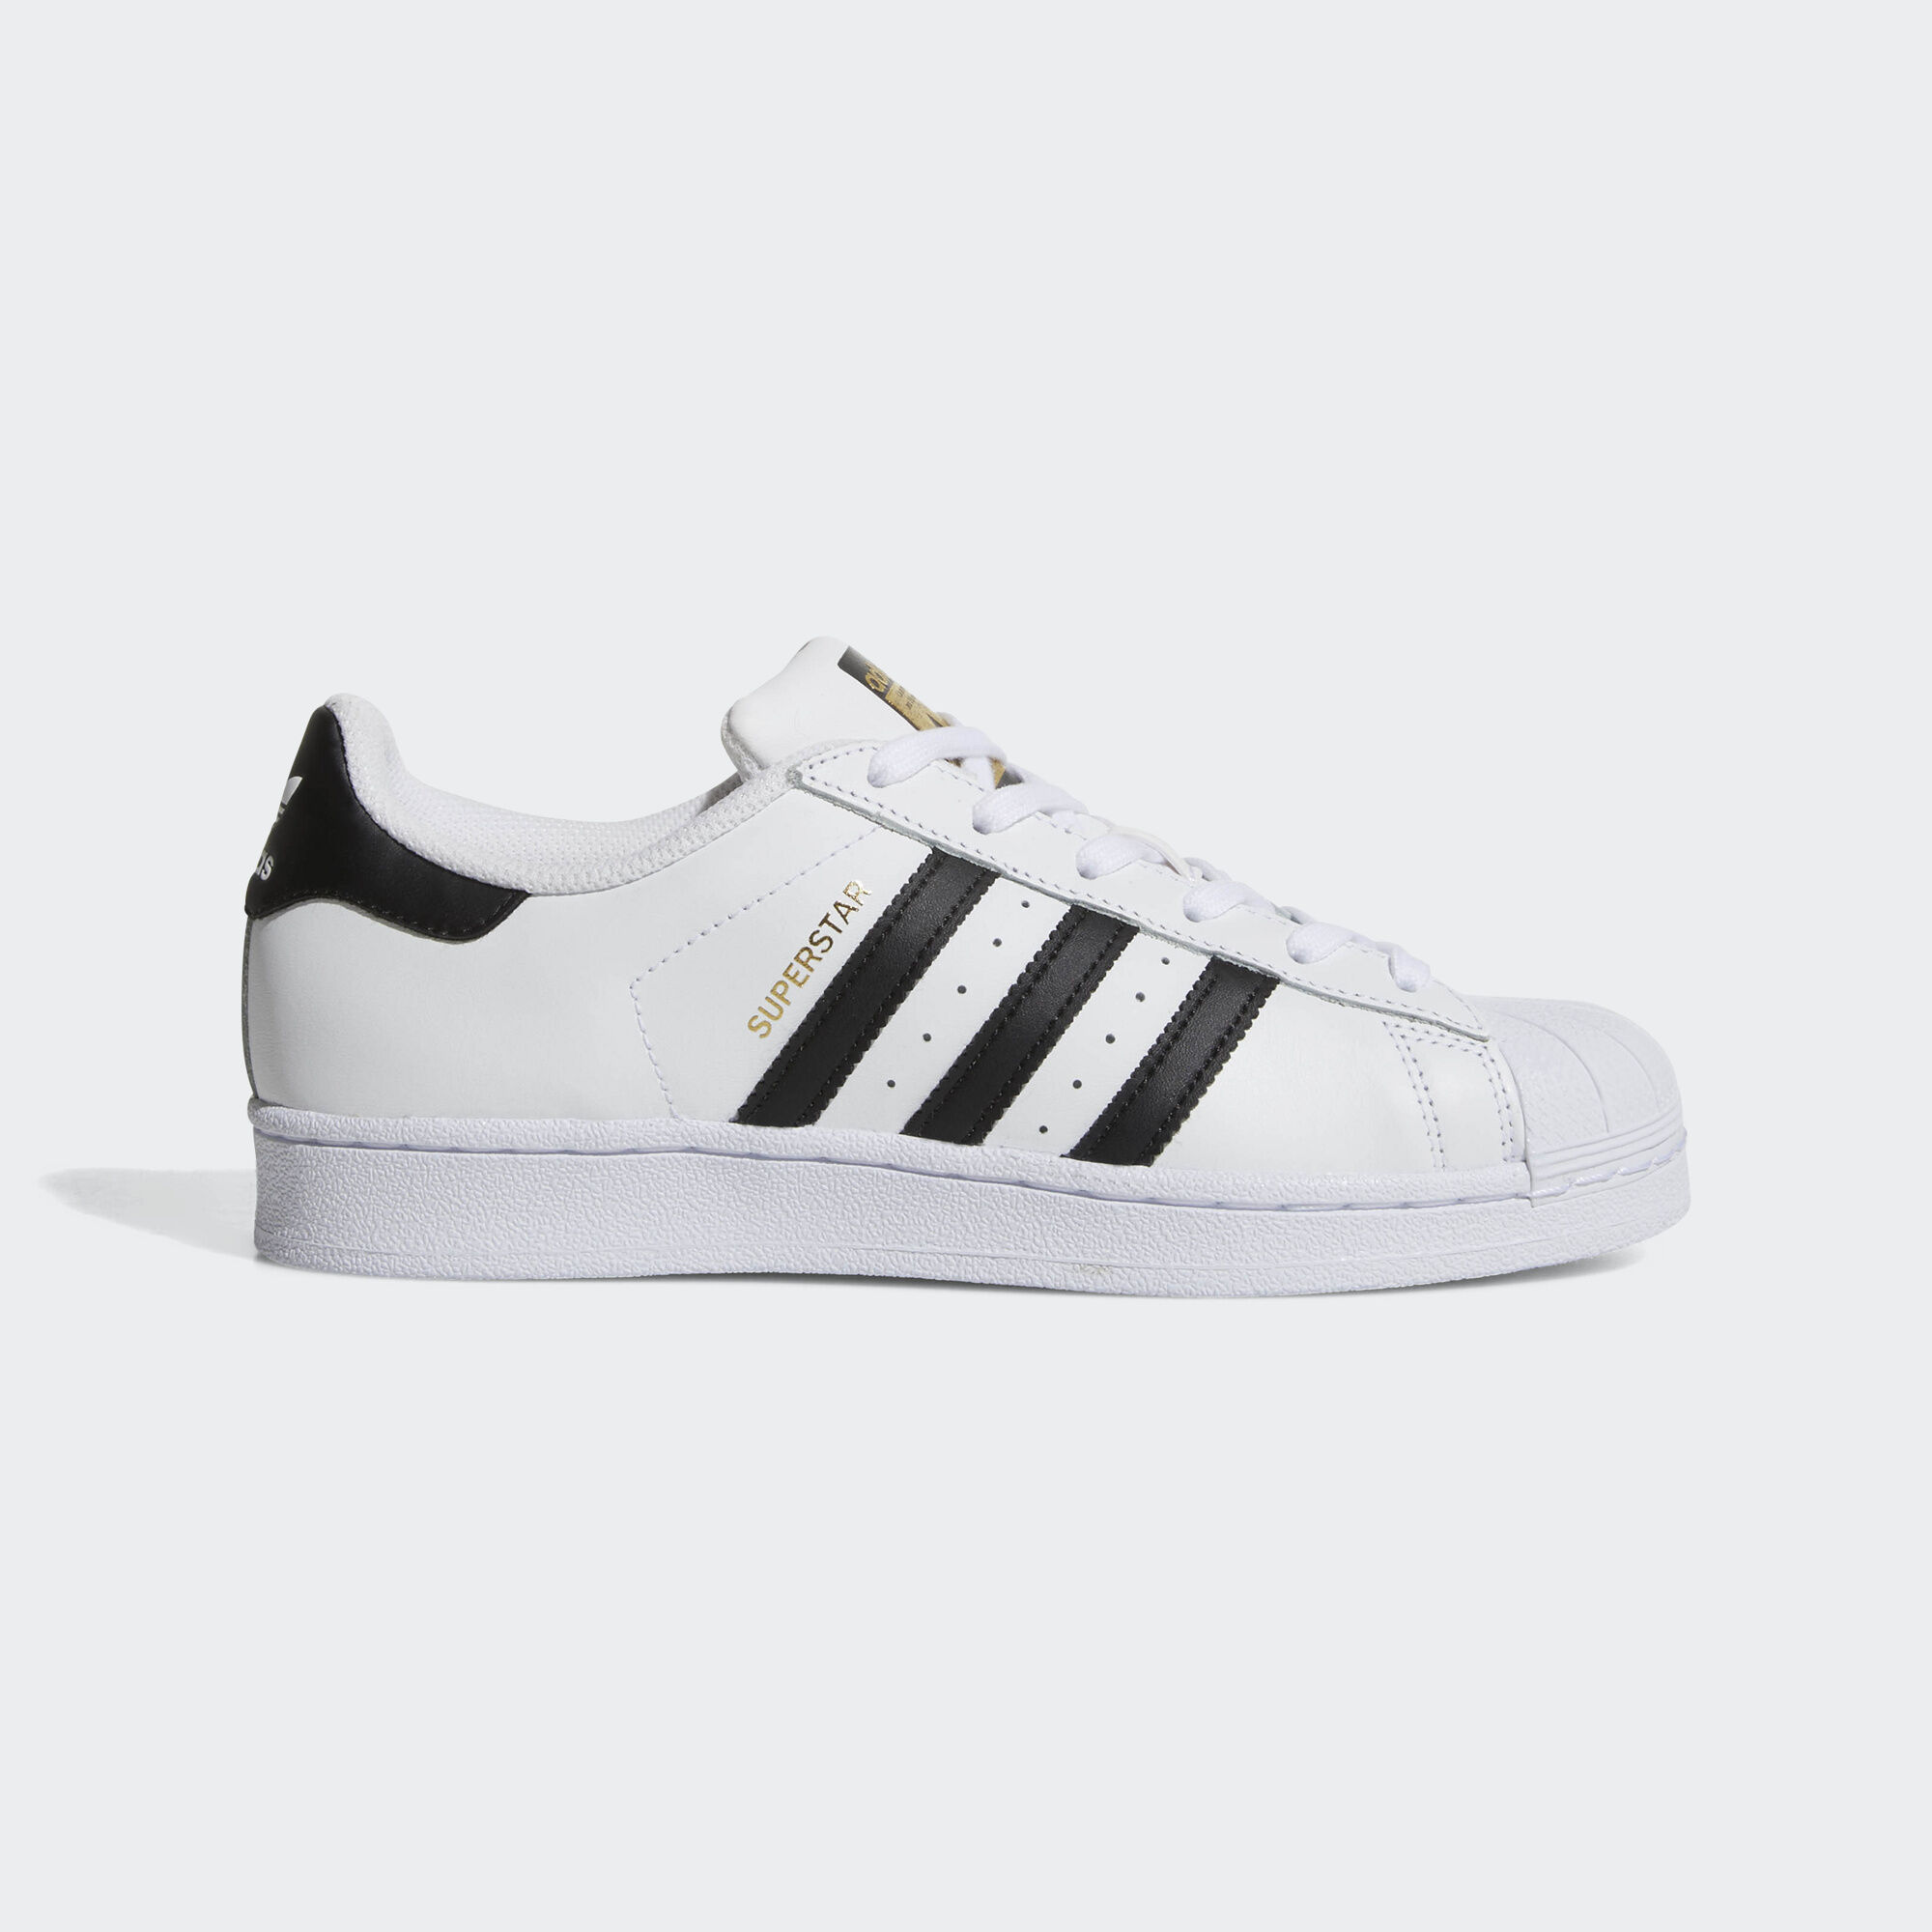 Adidas Superstar Runners